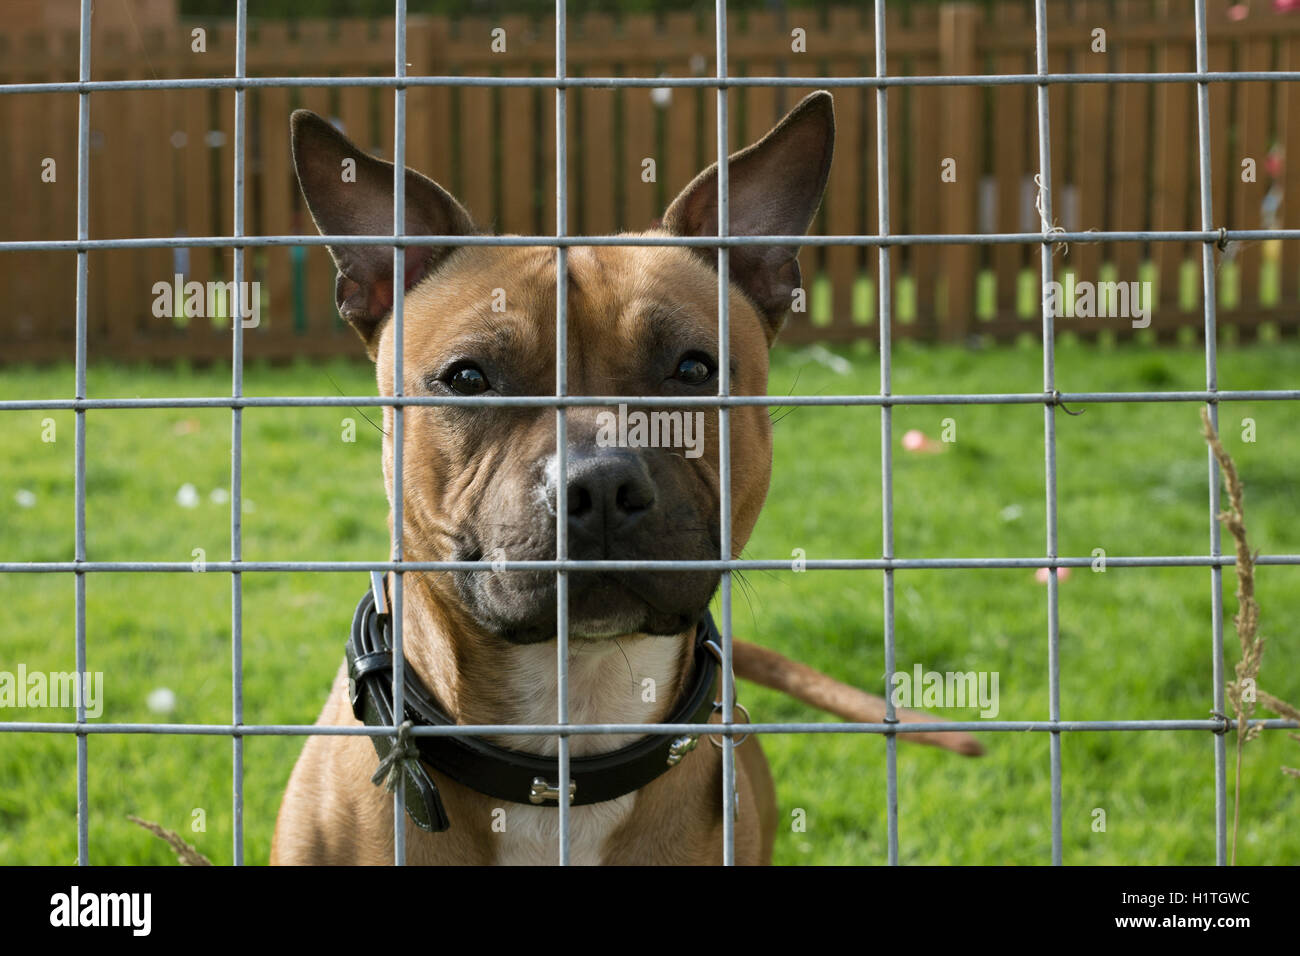 Dog through fence, Scotland, UK. - Stock Image